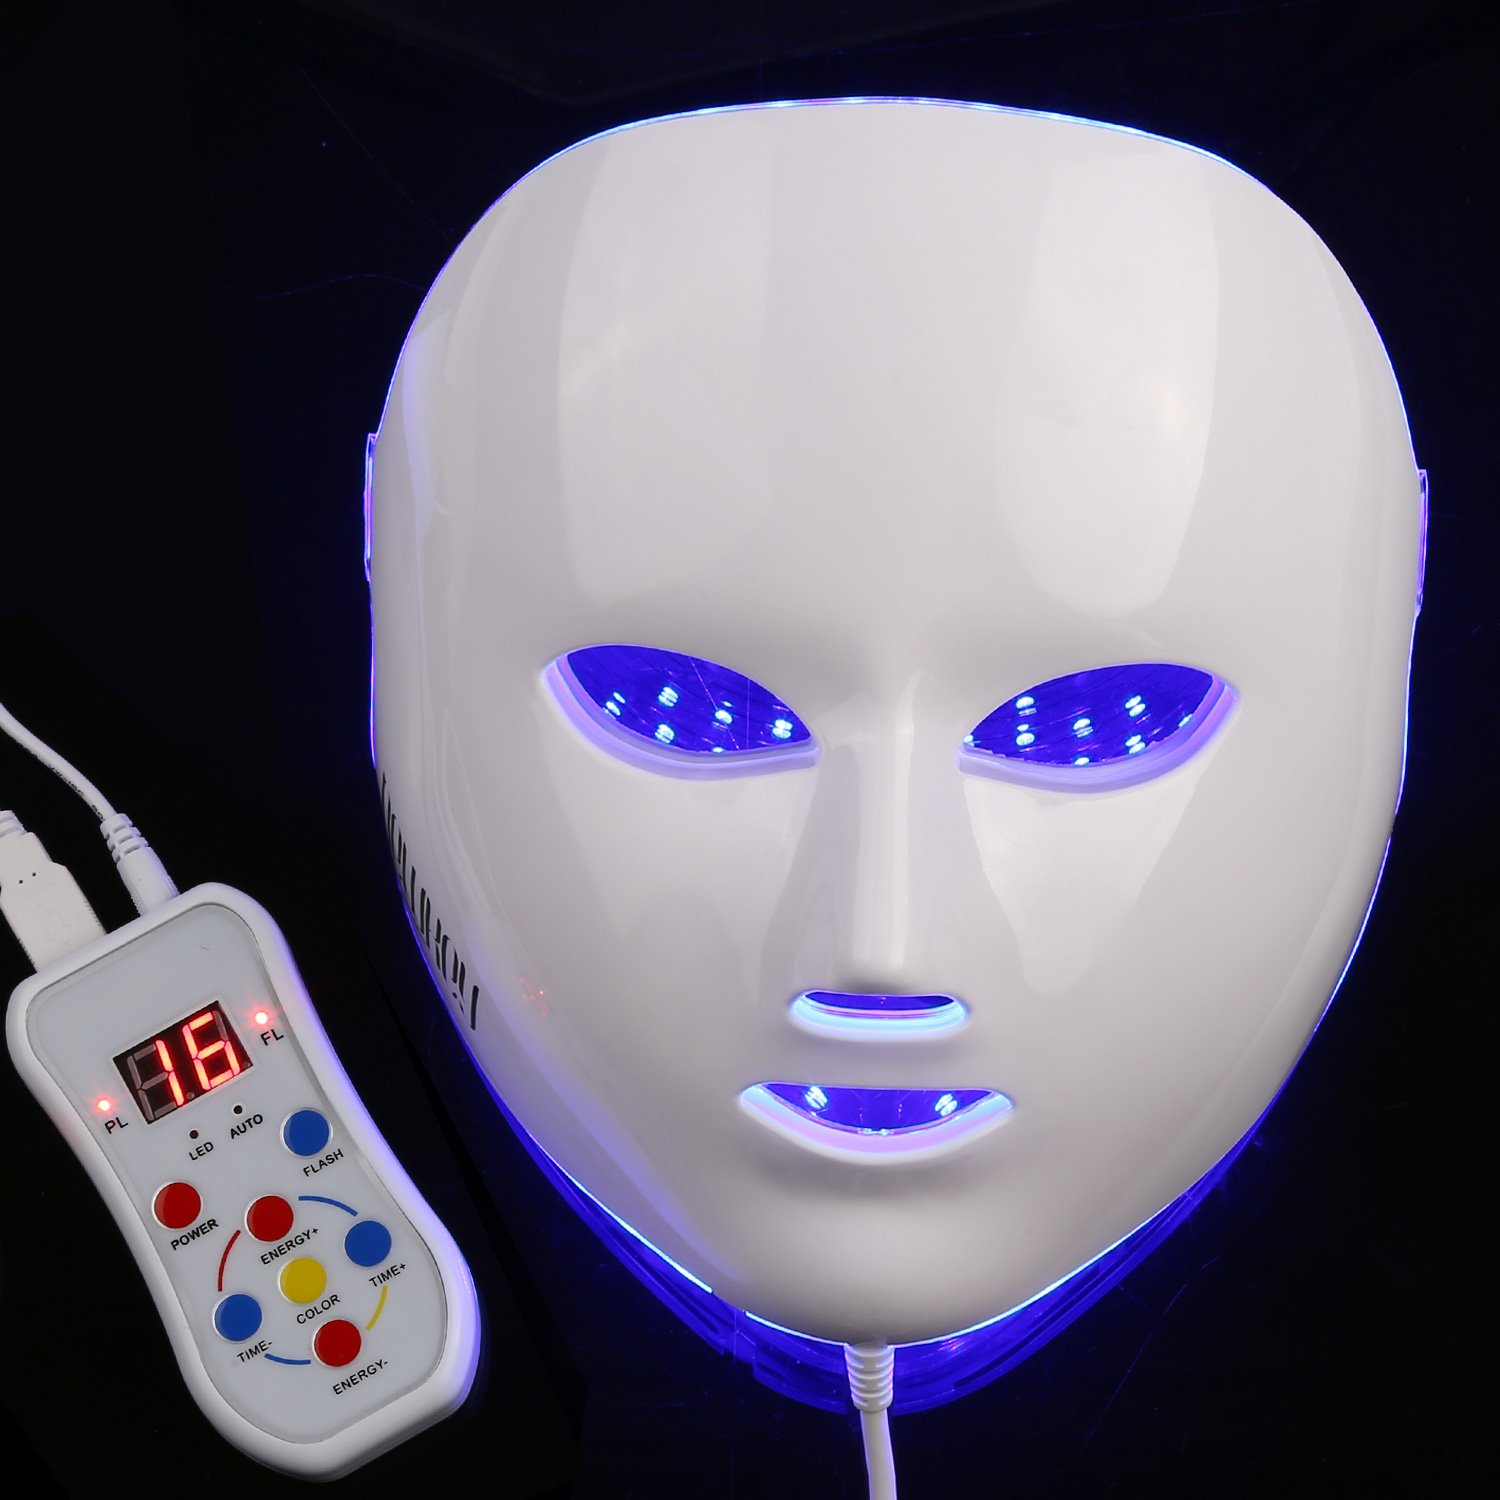 NEWKEY LED Photon Light Therapy Facial Mask Professional Anti Aging Skin Care Device for Face Whitening and Smooth - 1 YEAR WARRANTY by NEWKEY (Image #4)